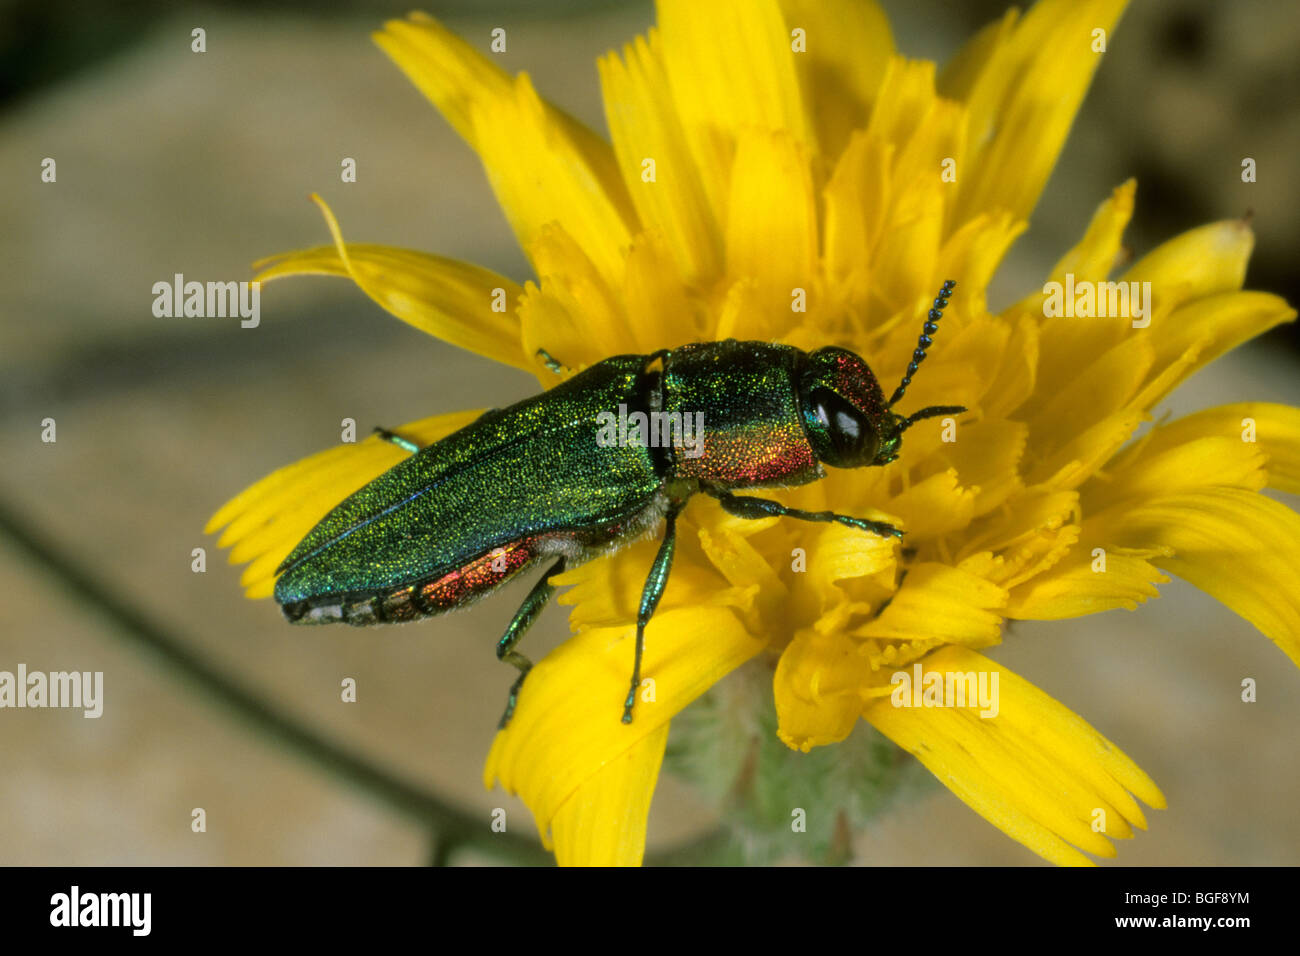 Wood-boring Beetle (Agrilus sp.) on a yellow flower. - Stock Image